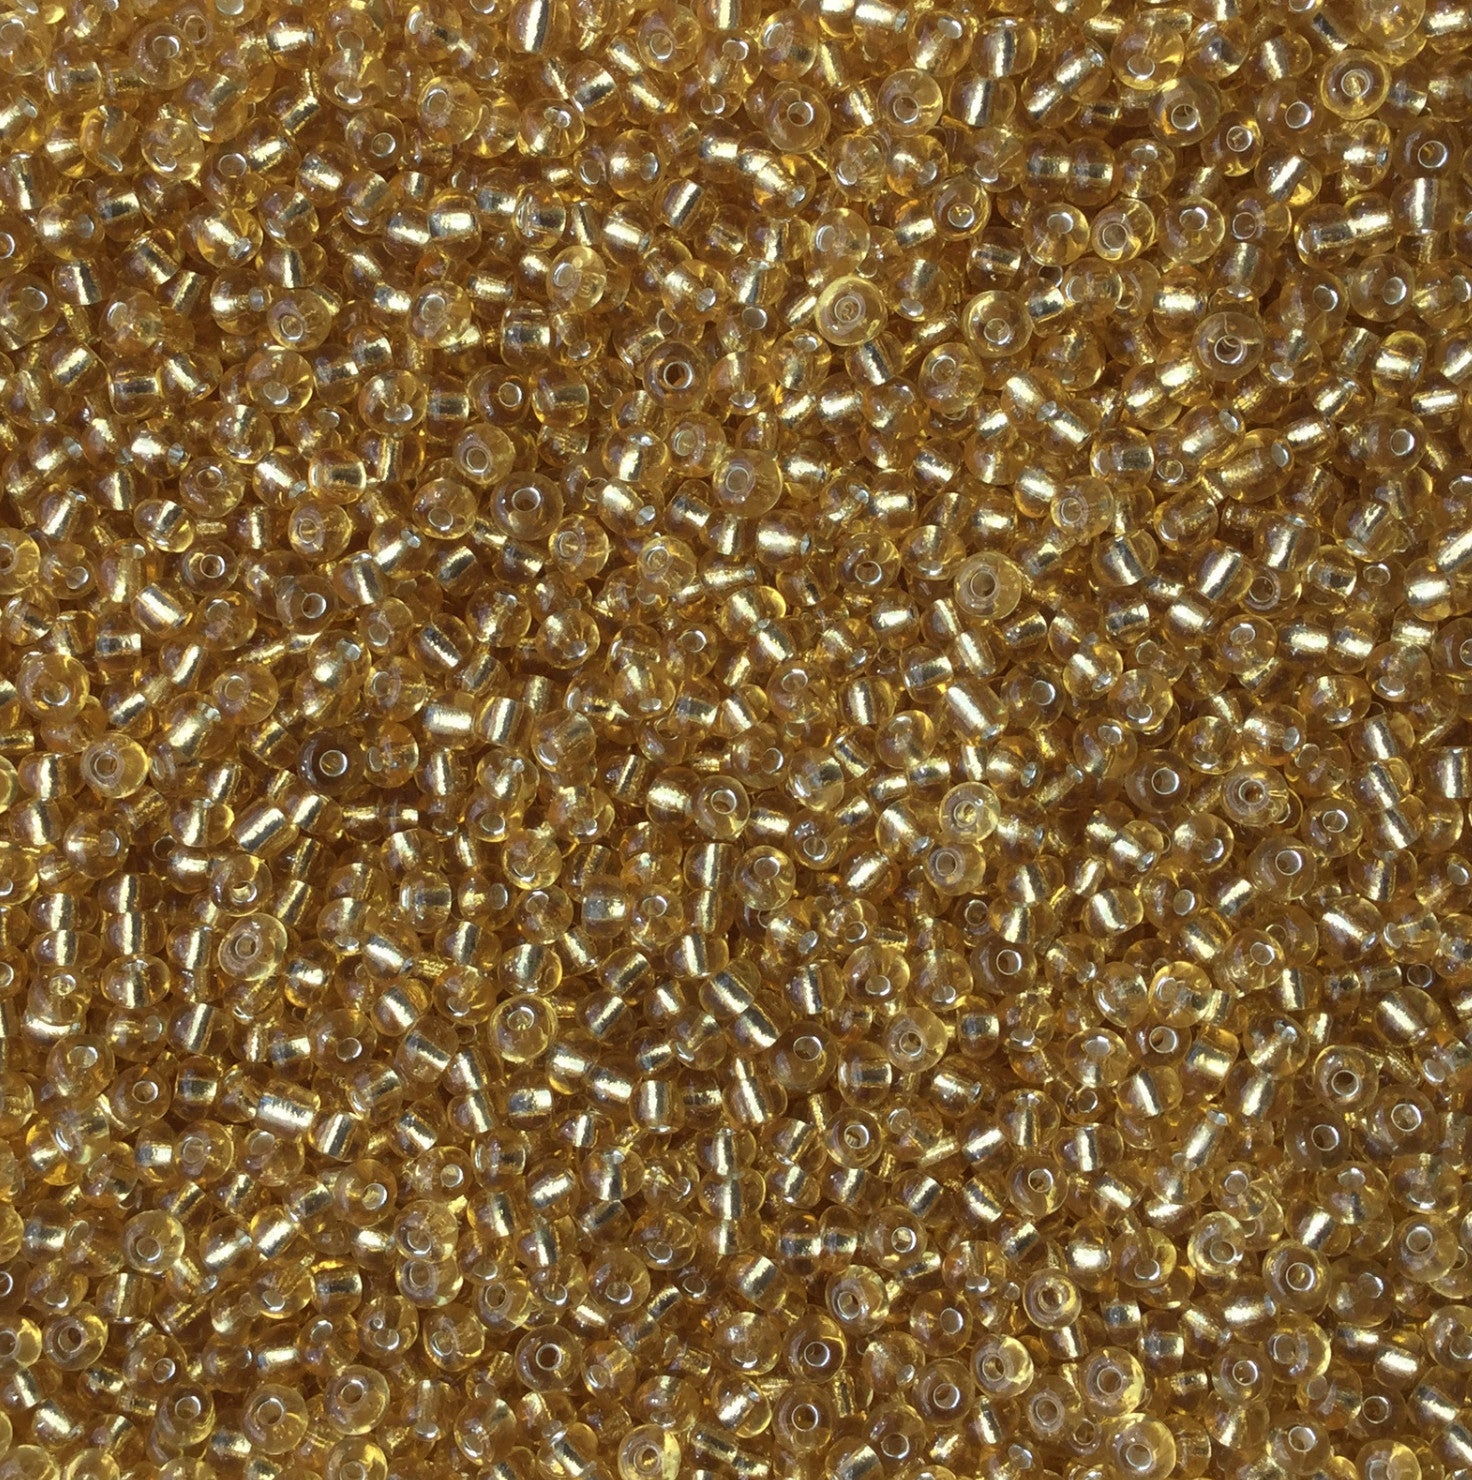 Pale Golden Rod Glass Seed Beads Transparent Lined